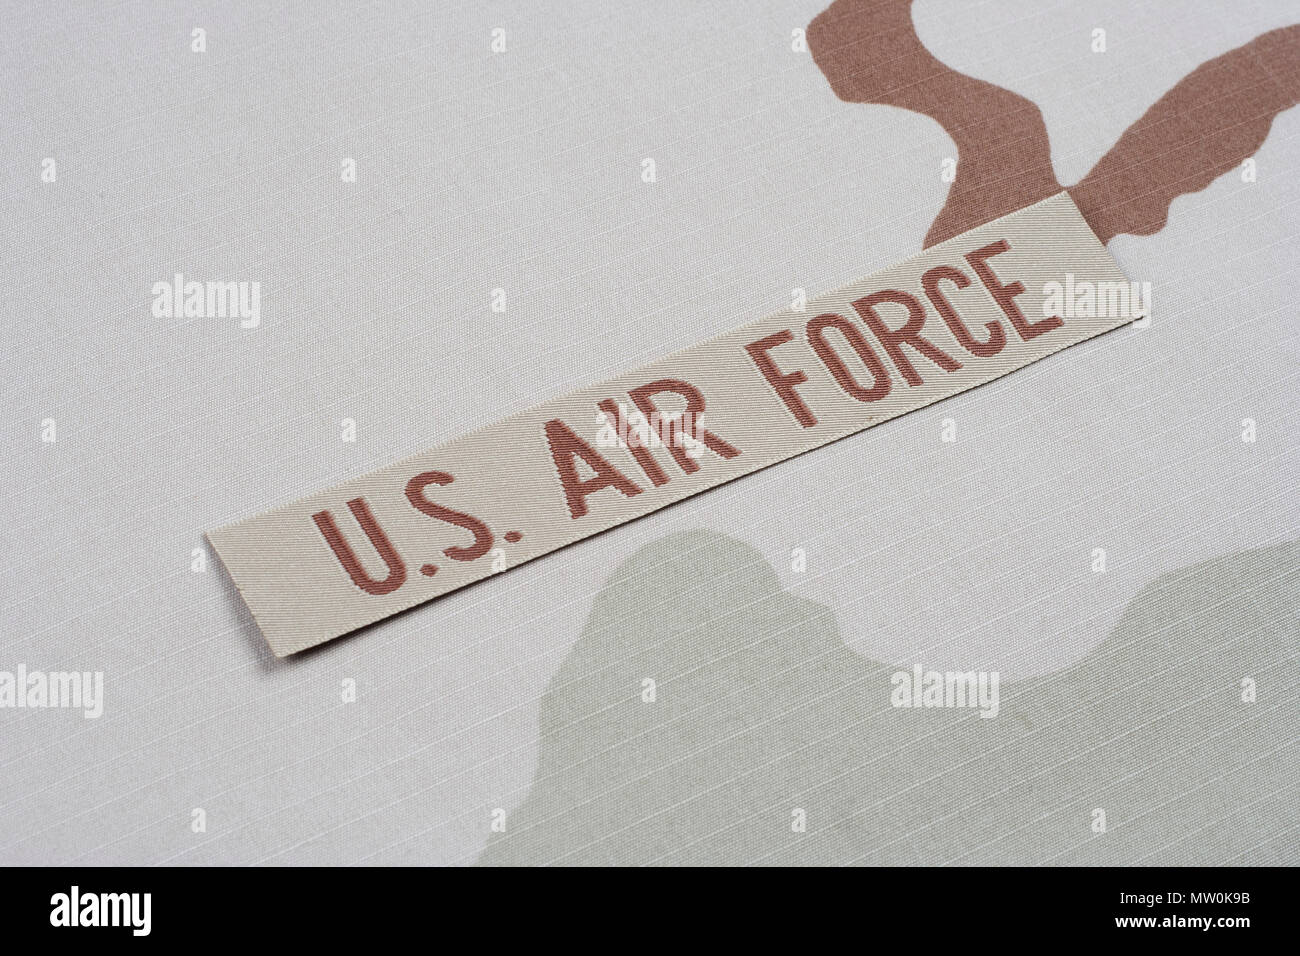 United States Army Air Force Symbol Stock Photos United States